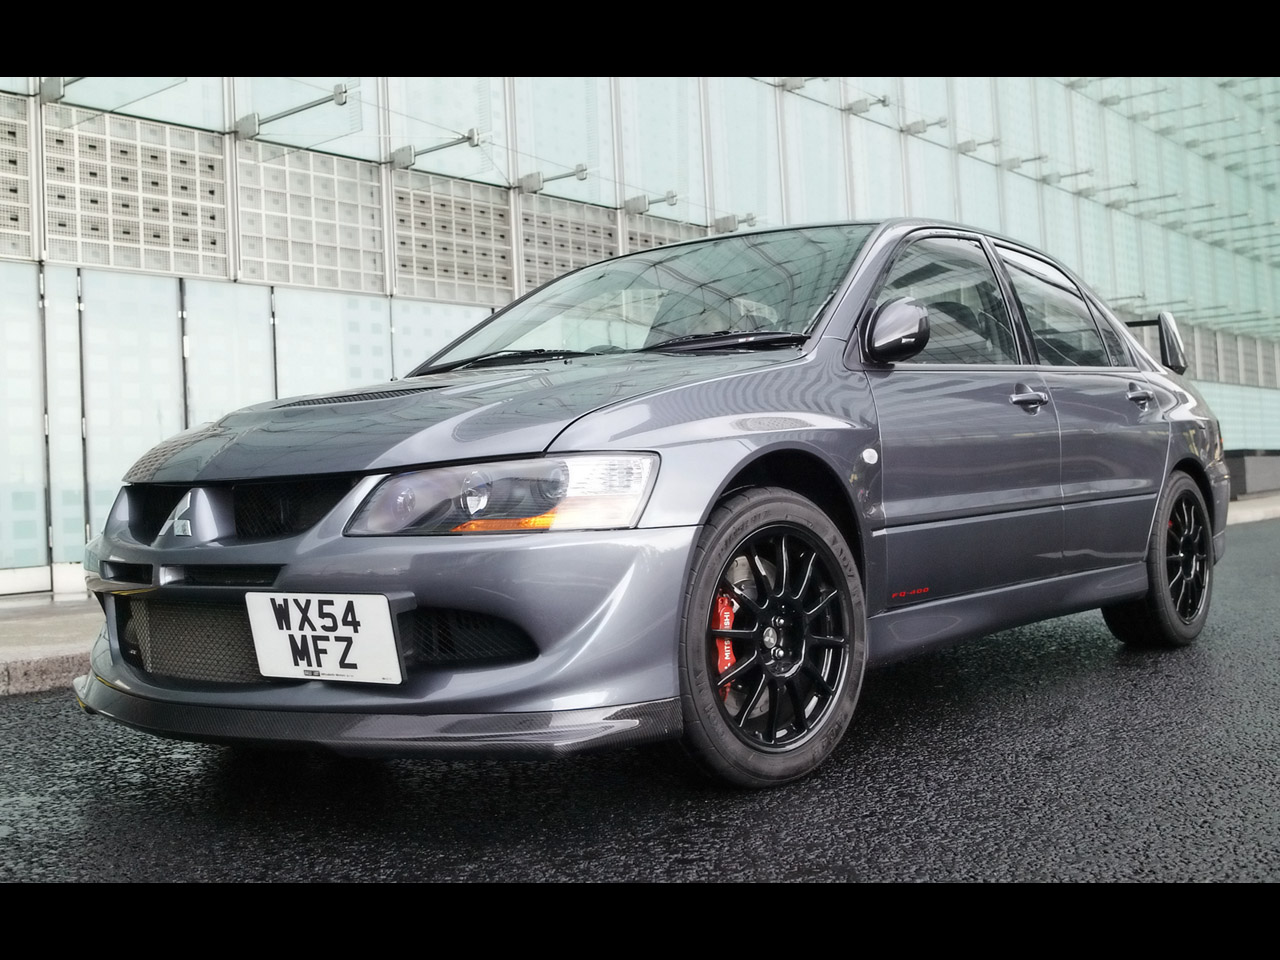 2005 Mitsubishi Lancer Evolution VIII MR FQ-400 - Front Angle - 1280x960 Wallpaper